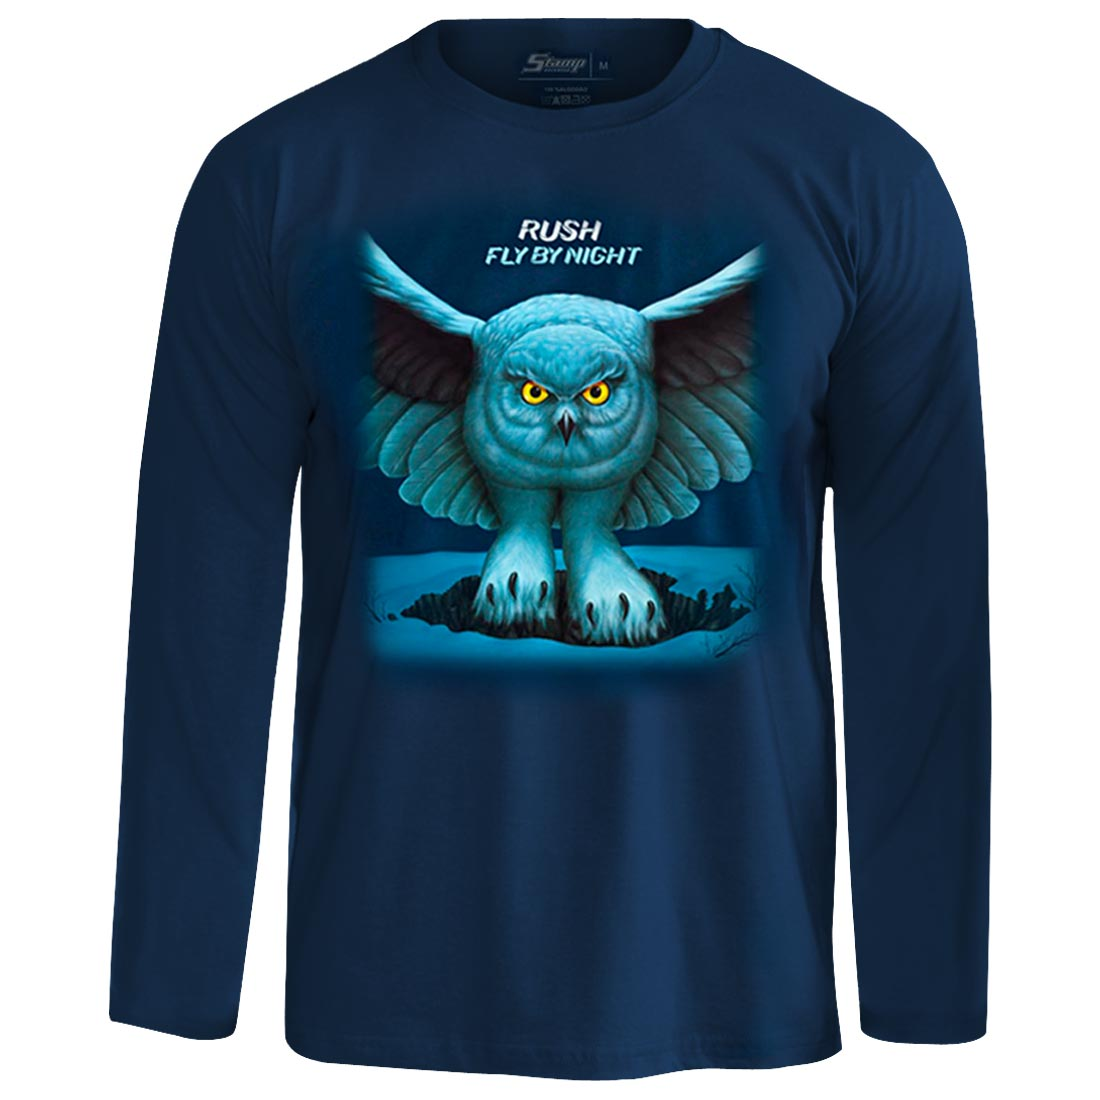 Camiseta Manga Longa Rush Fly By Night